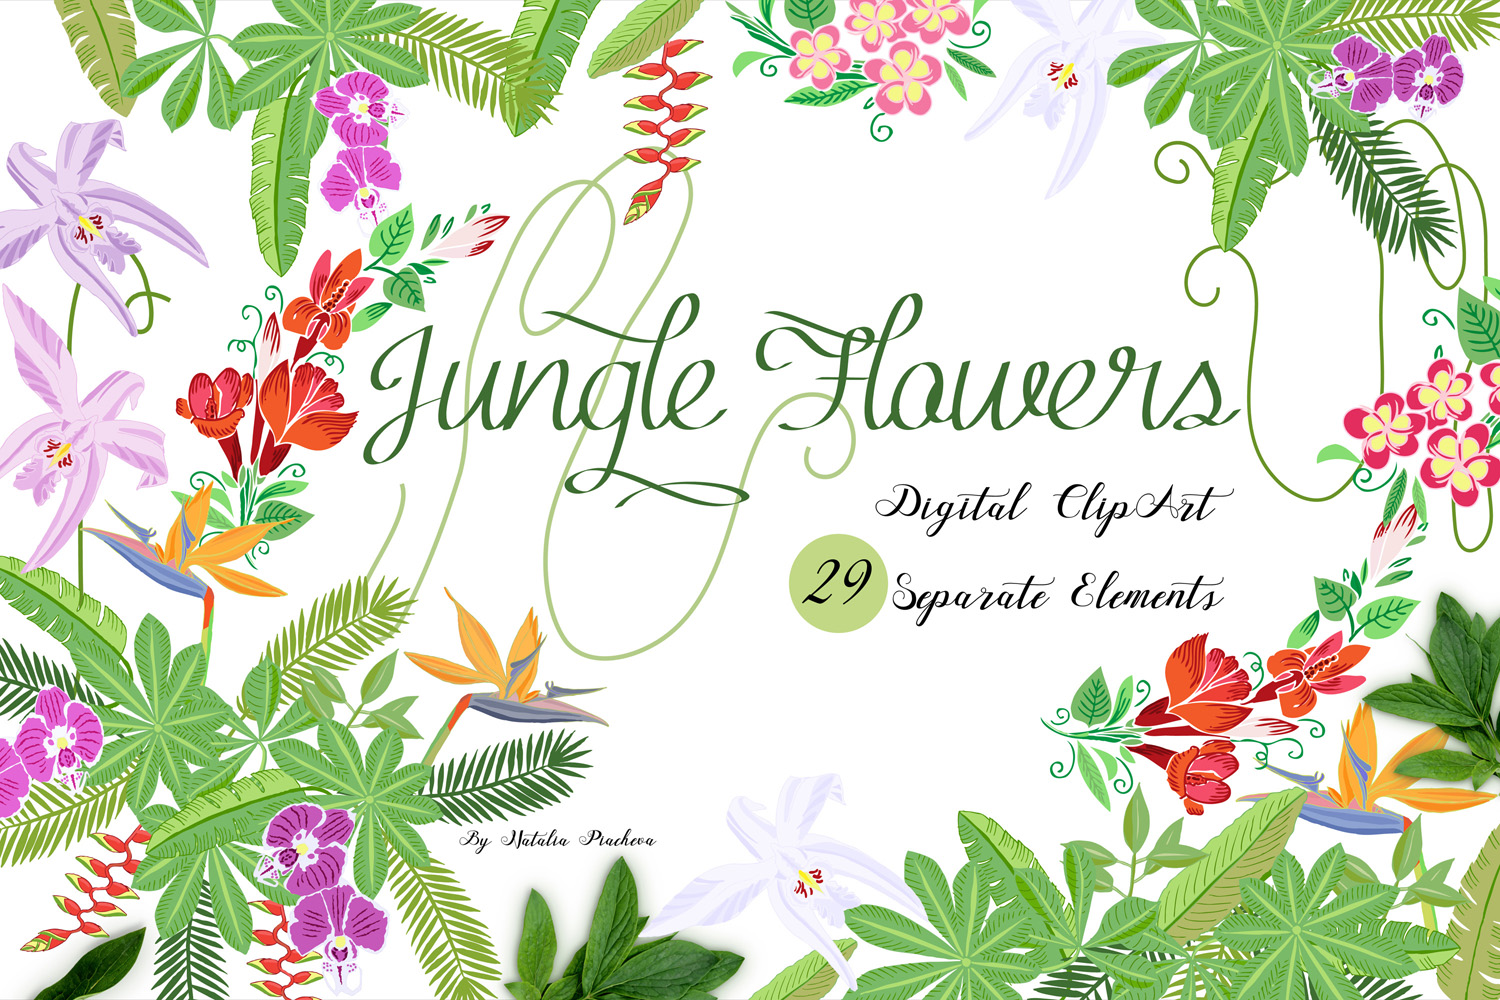 Jungle clipart with flowers example image 1